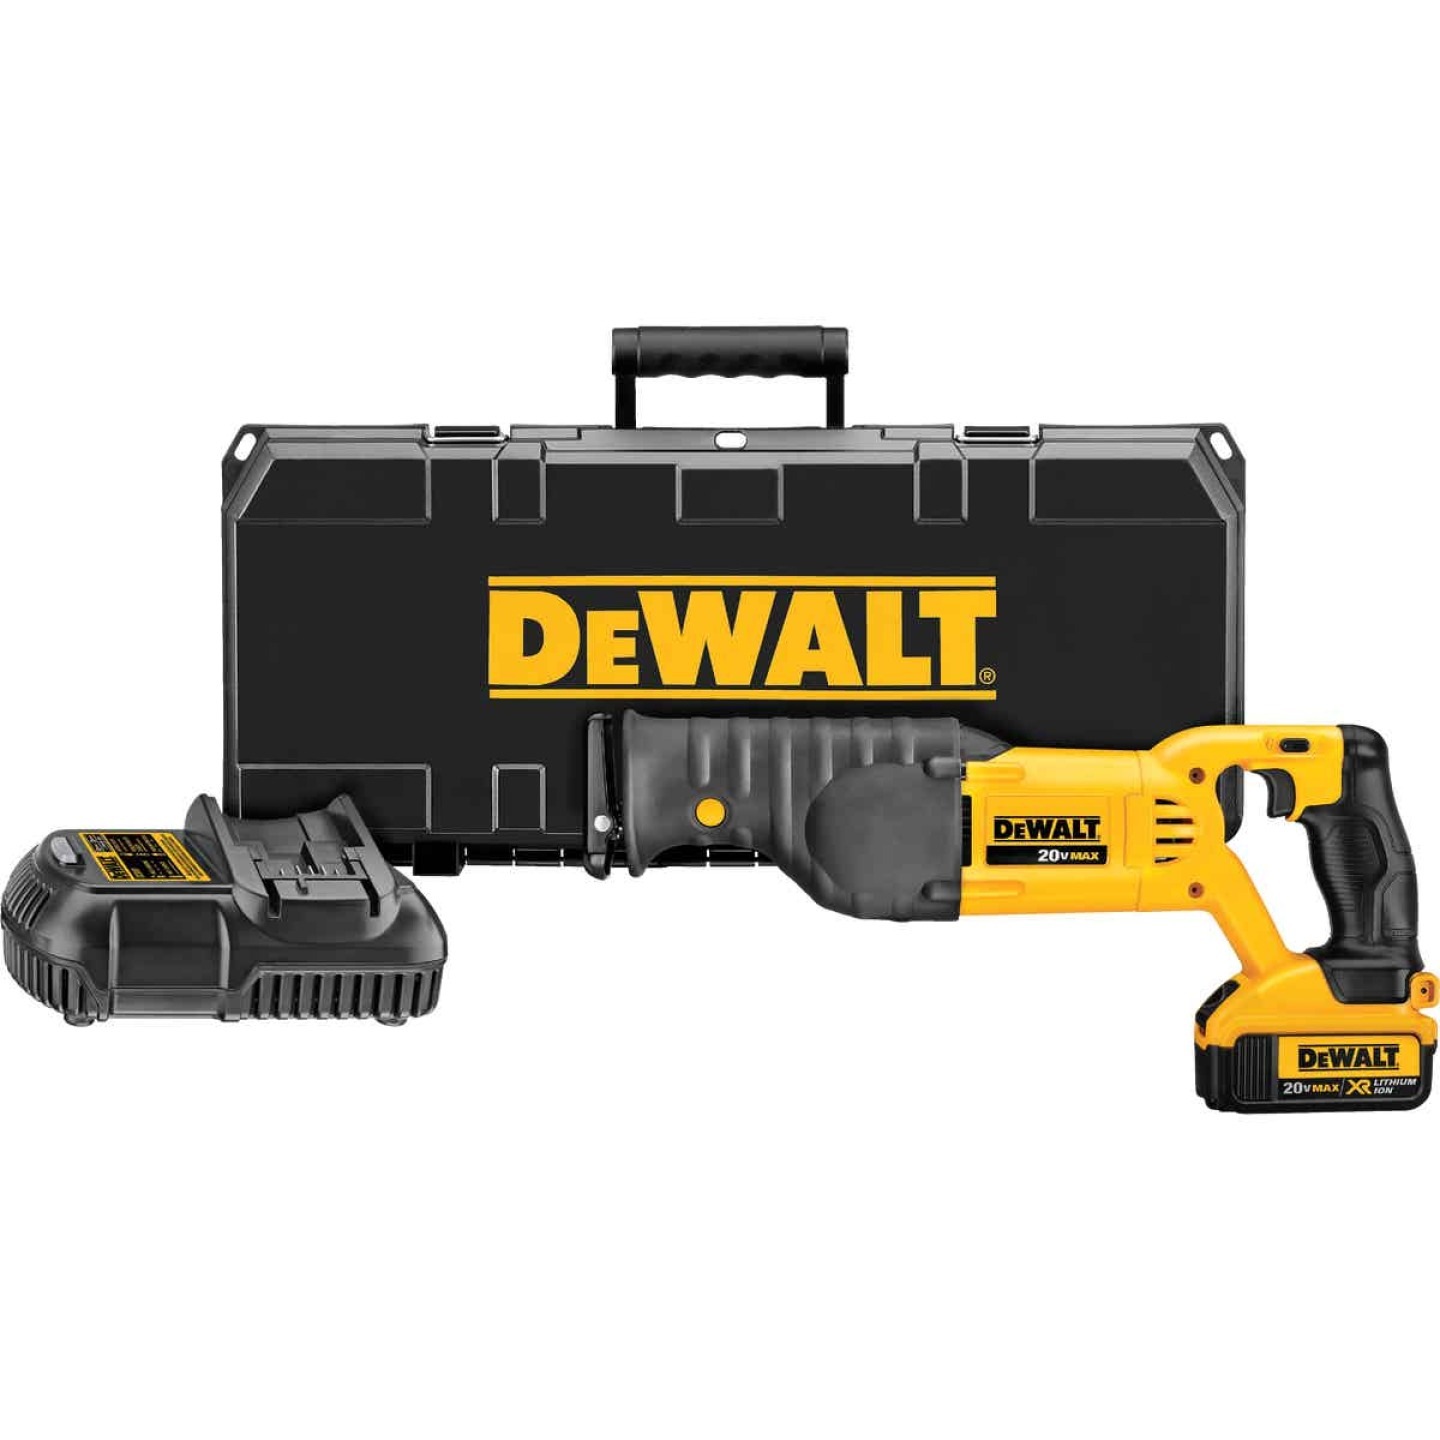 DeWalt 20 Volt MAX Lithium-Ion Cordless Reciprocating Saw Kit Image 1